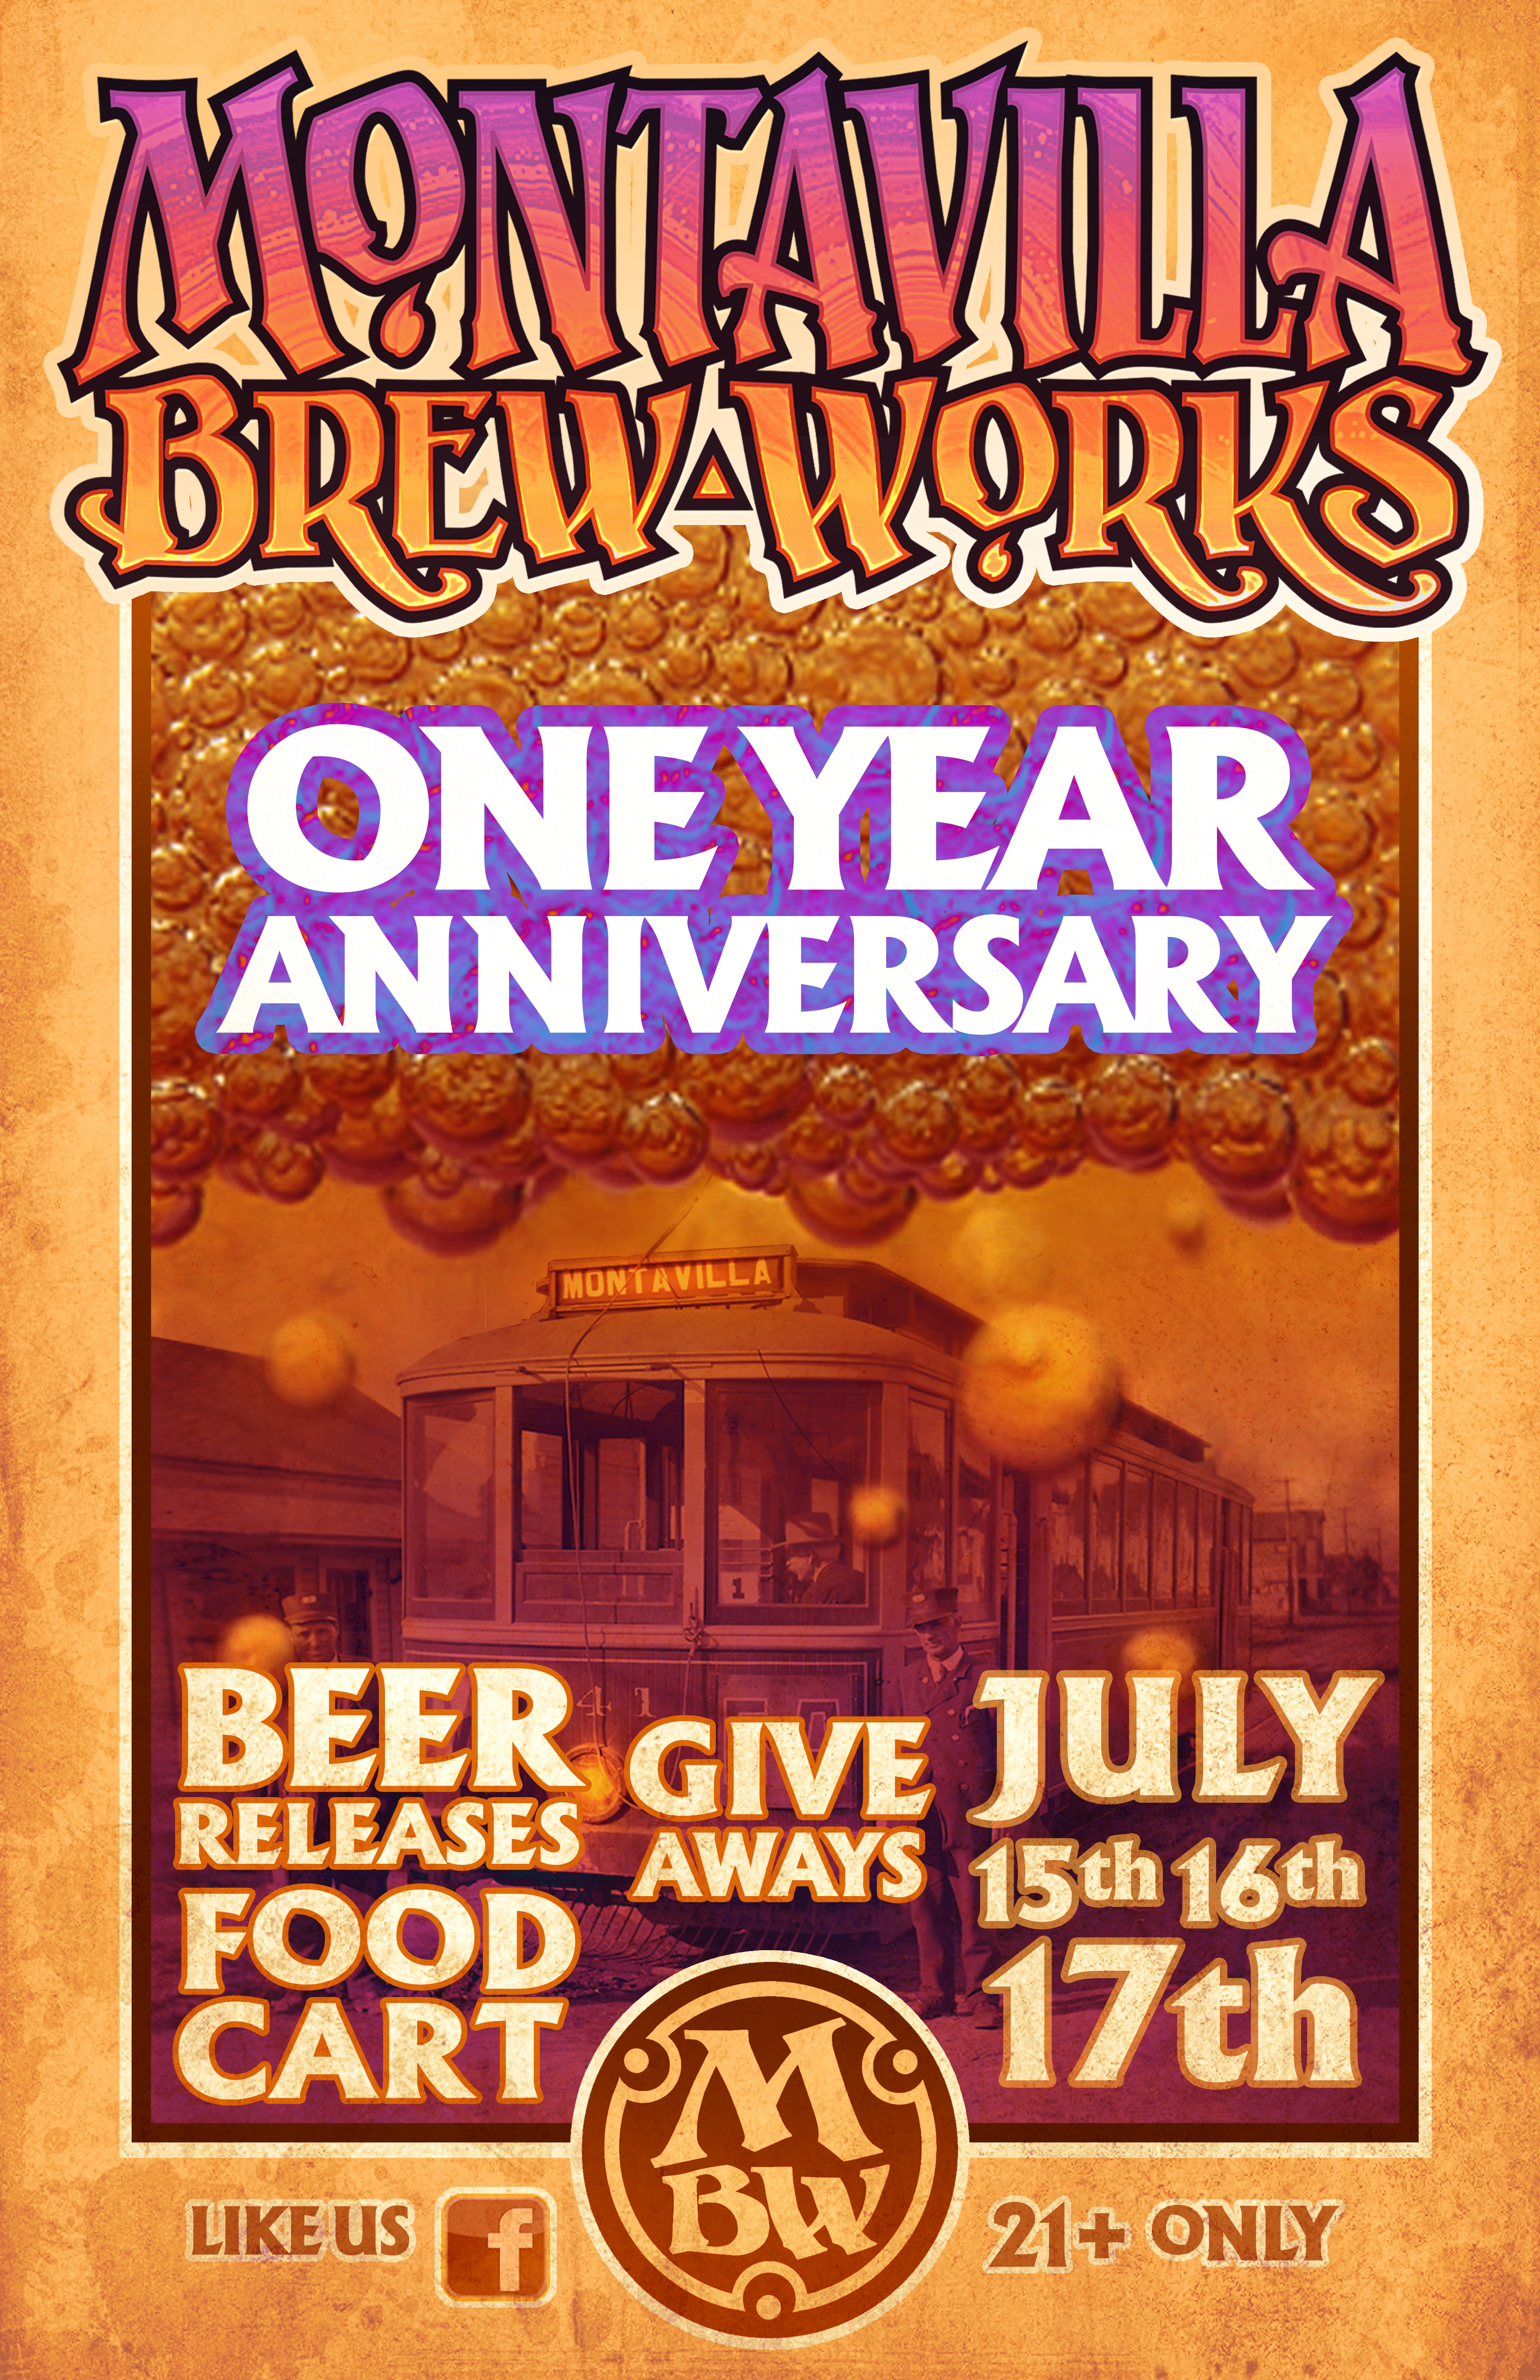 Montavilla Brew Works One Year Anniversary. (poster by Chuck Lukacs 2016)